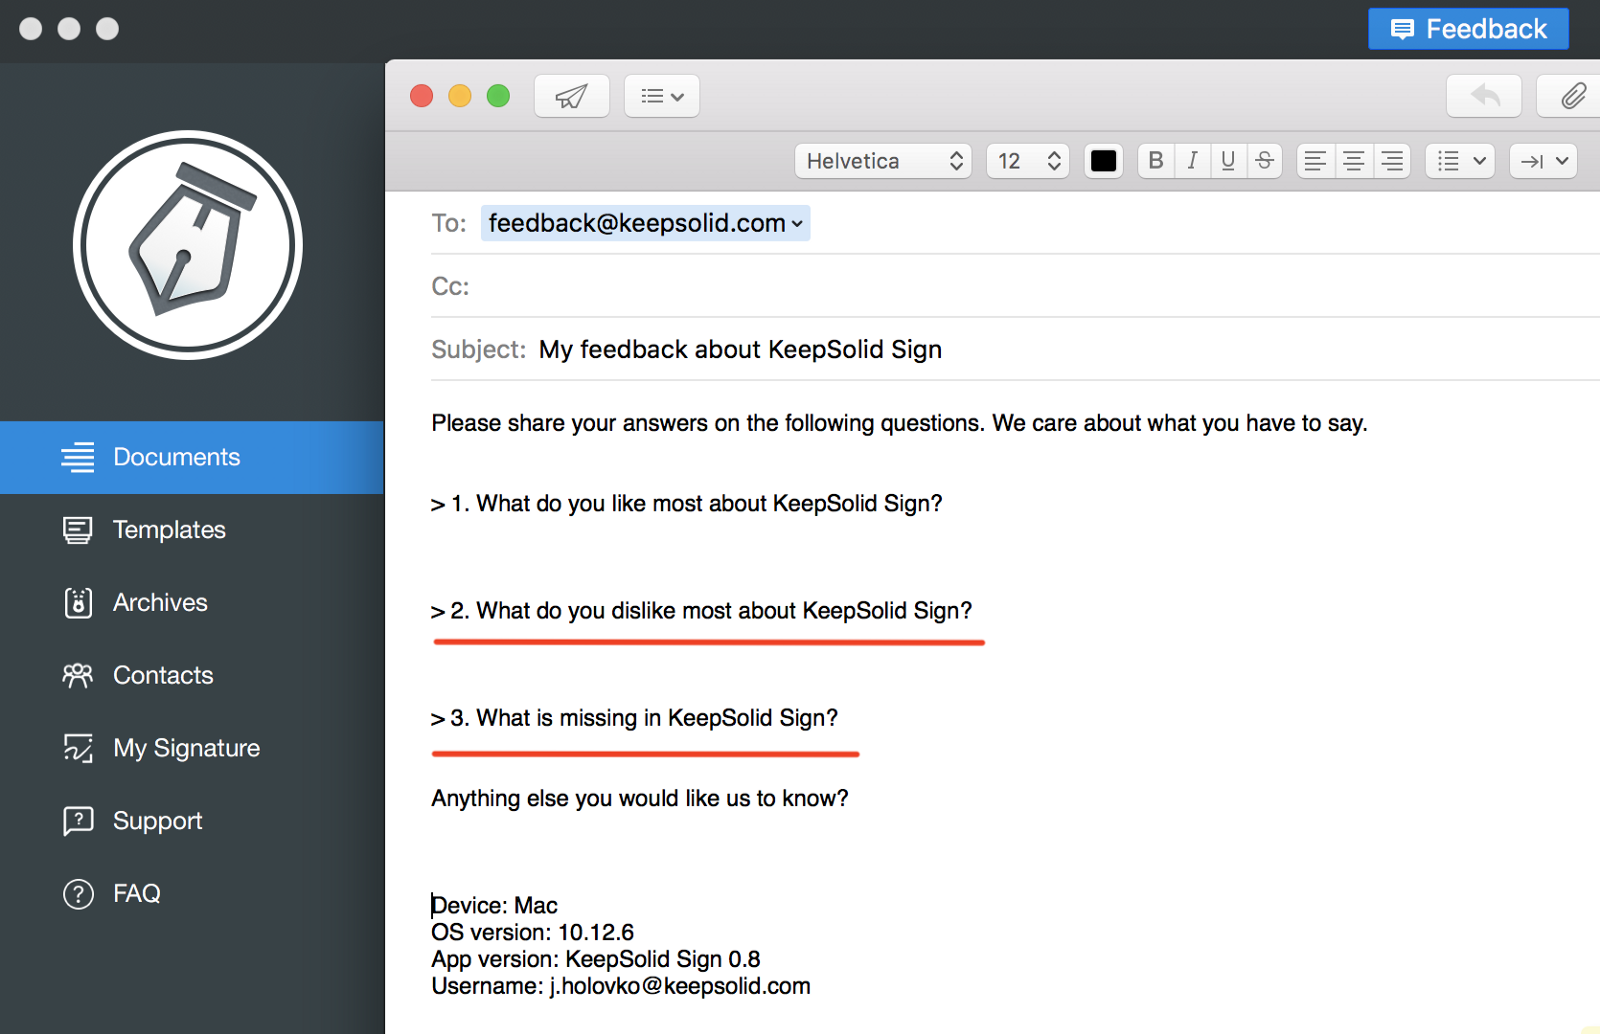 Good Our Feedback Form For KeepSolid Sign